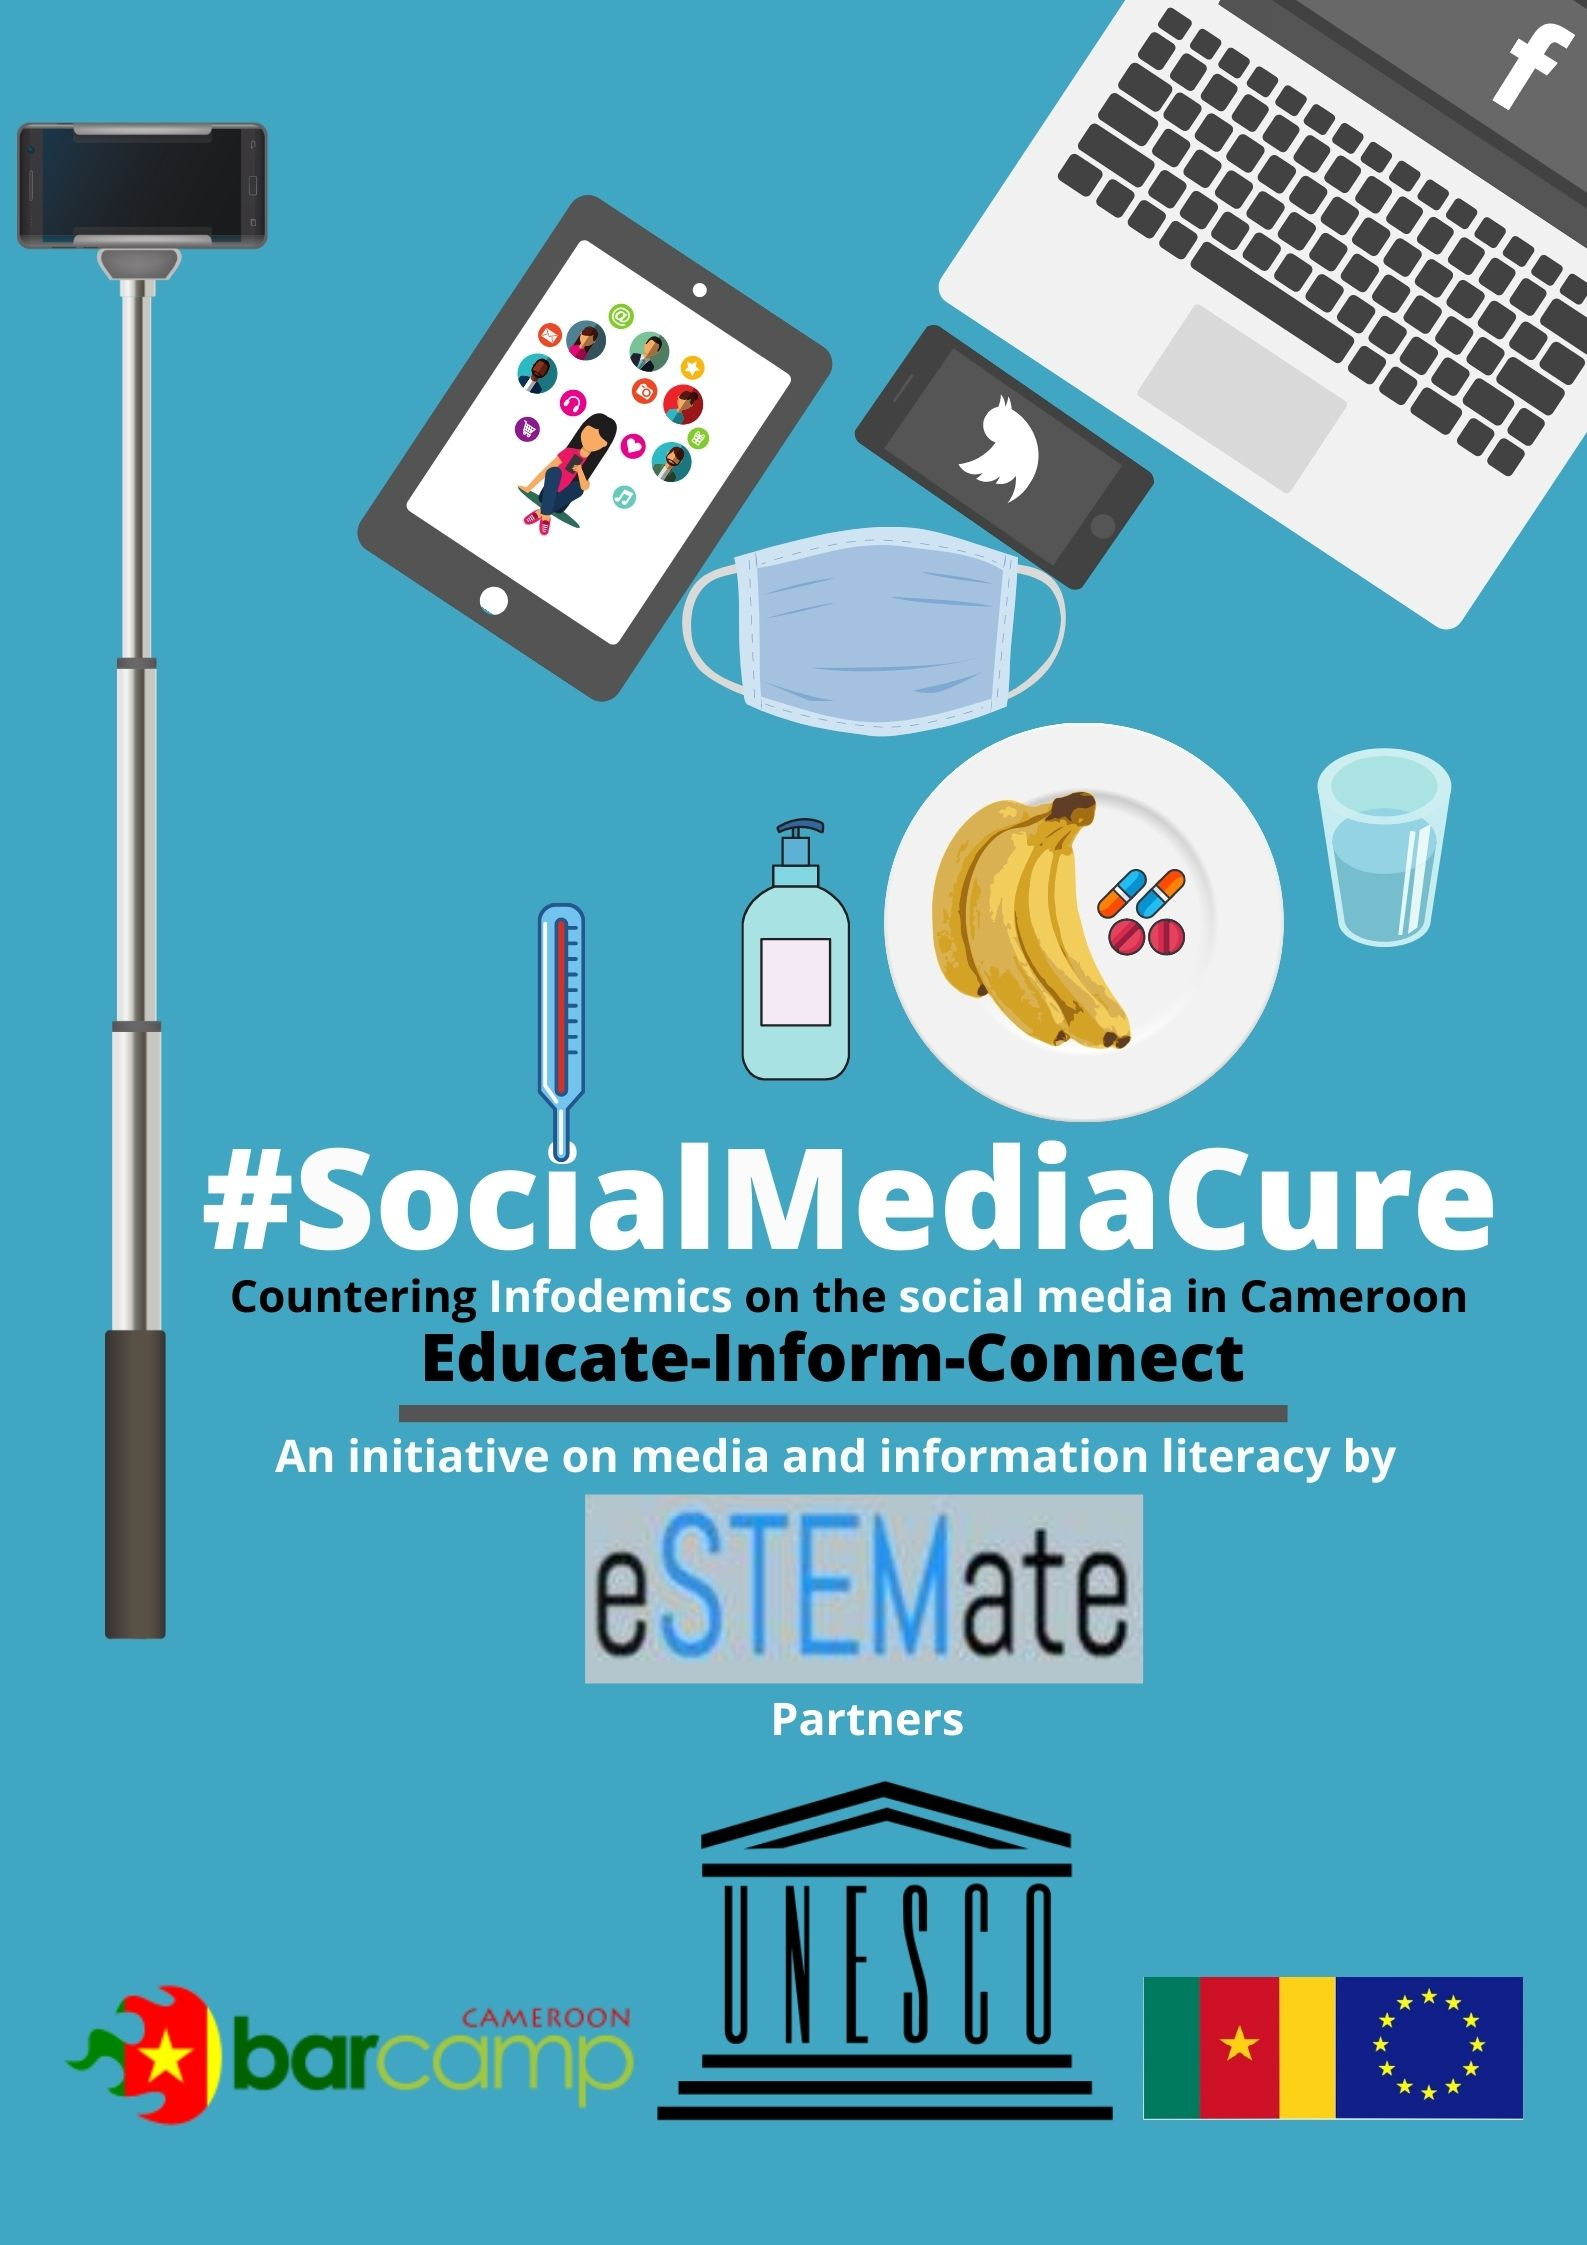 #SocialMediaCure: The Best Social Media Care in Cameroon